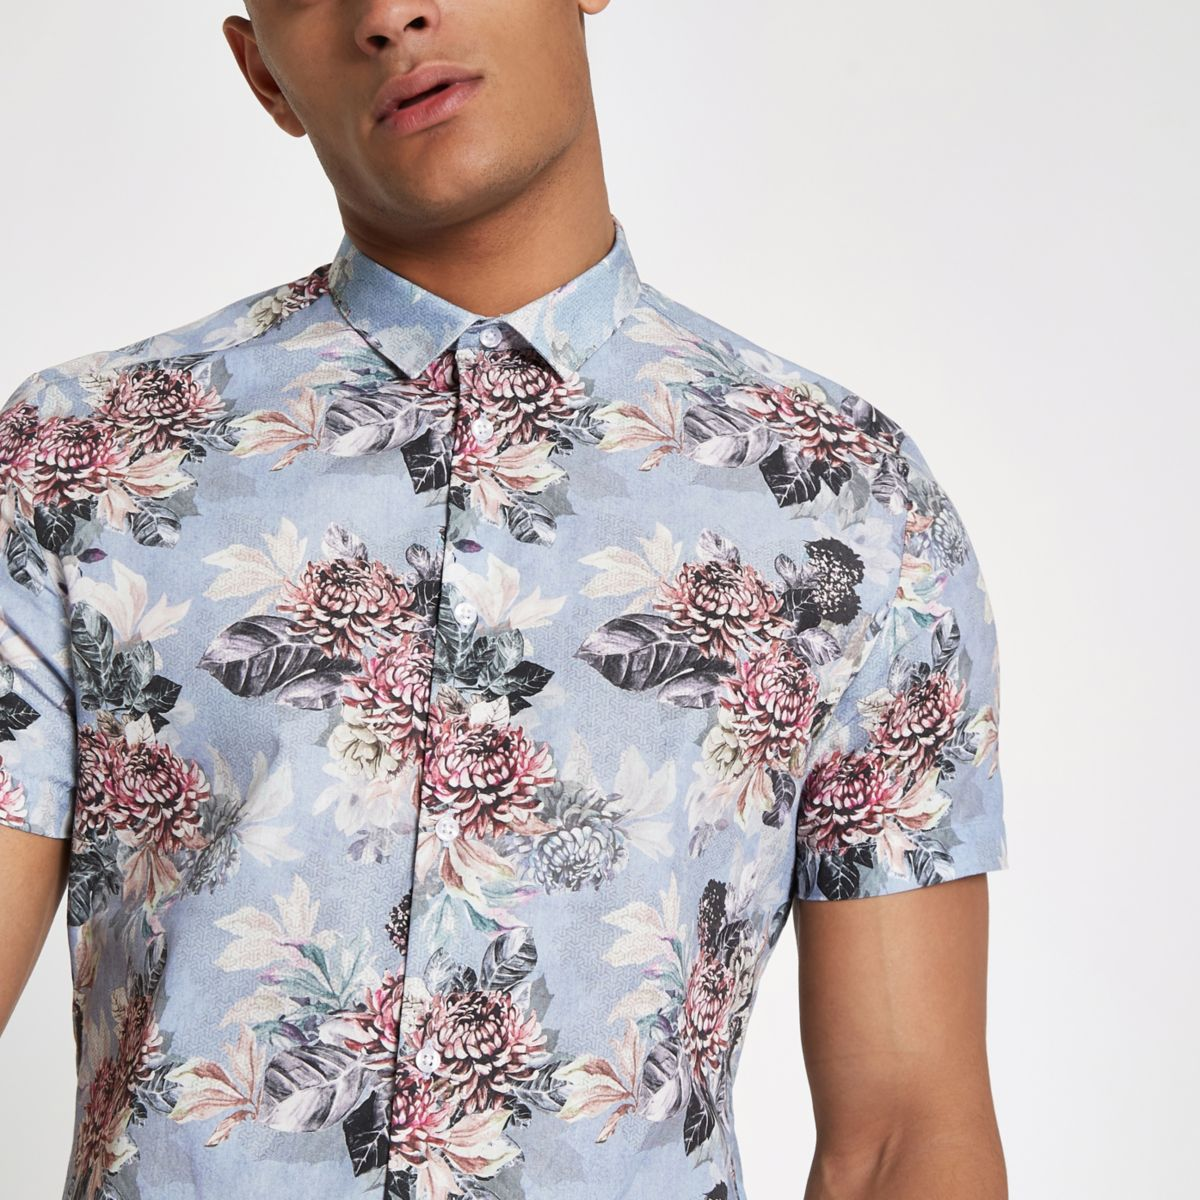 Light blue floral shirt